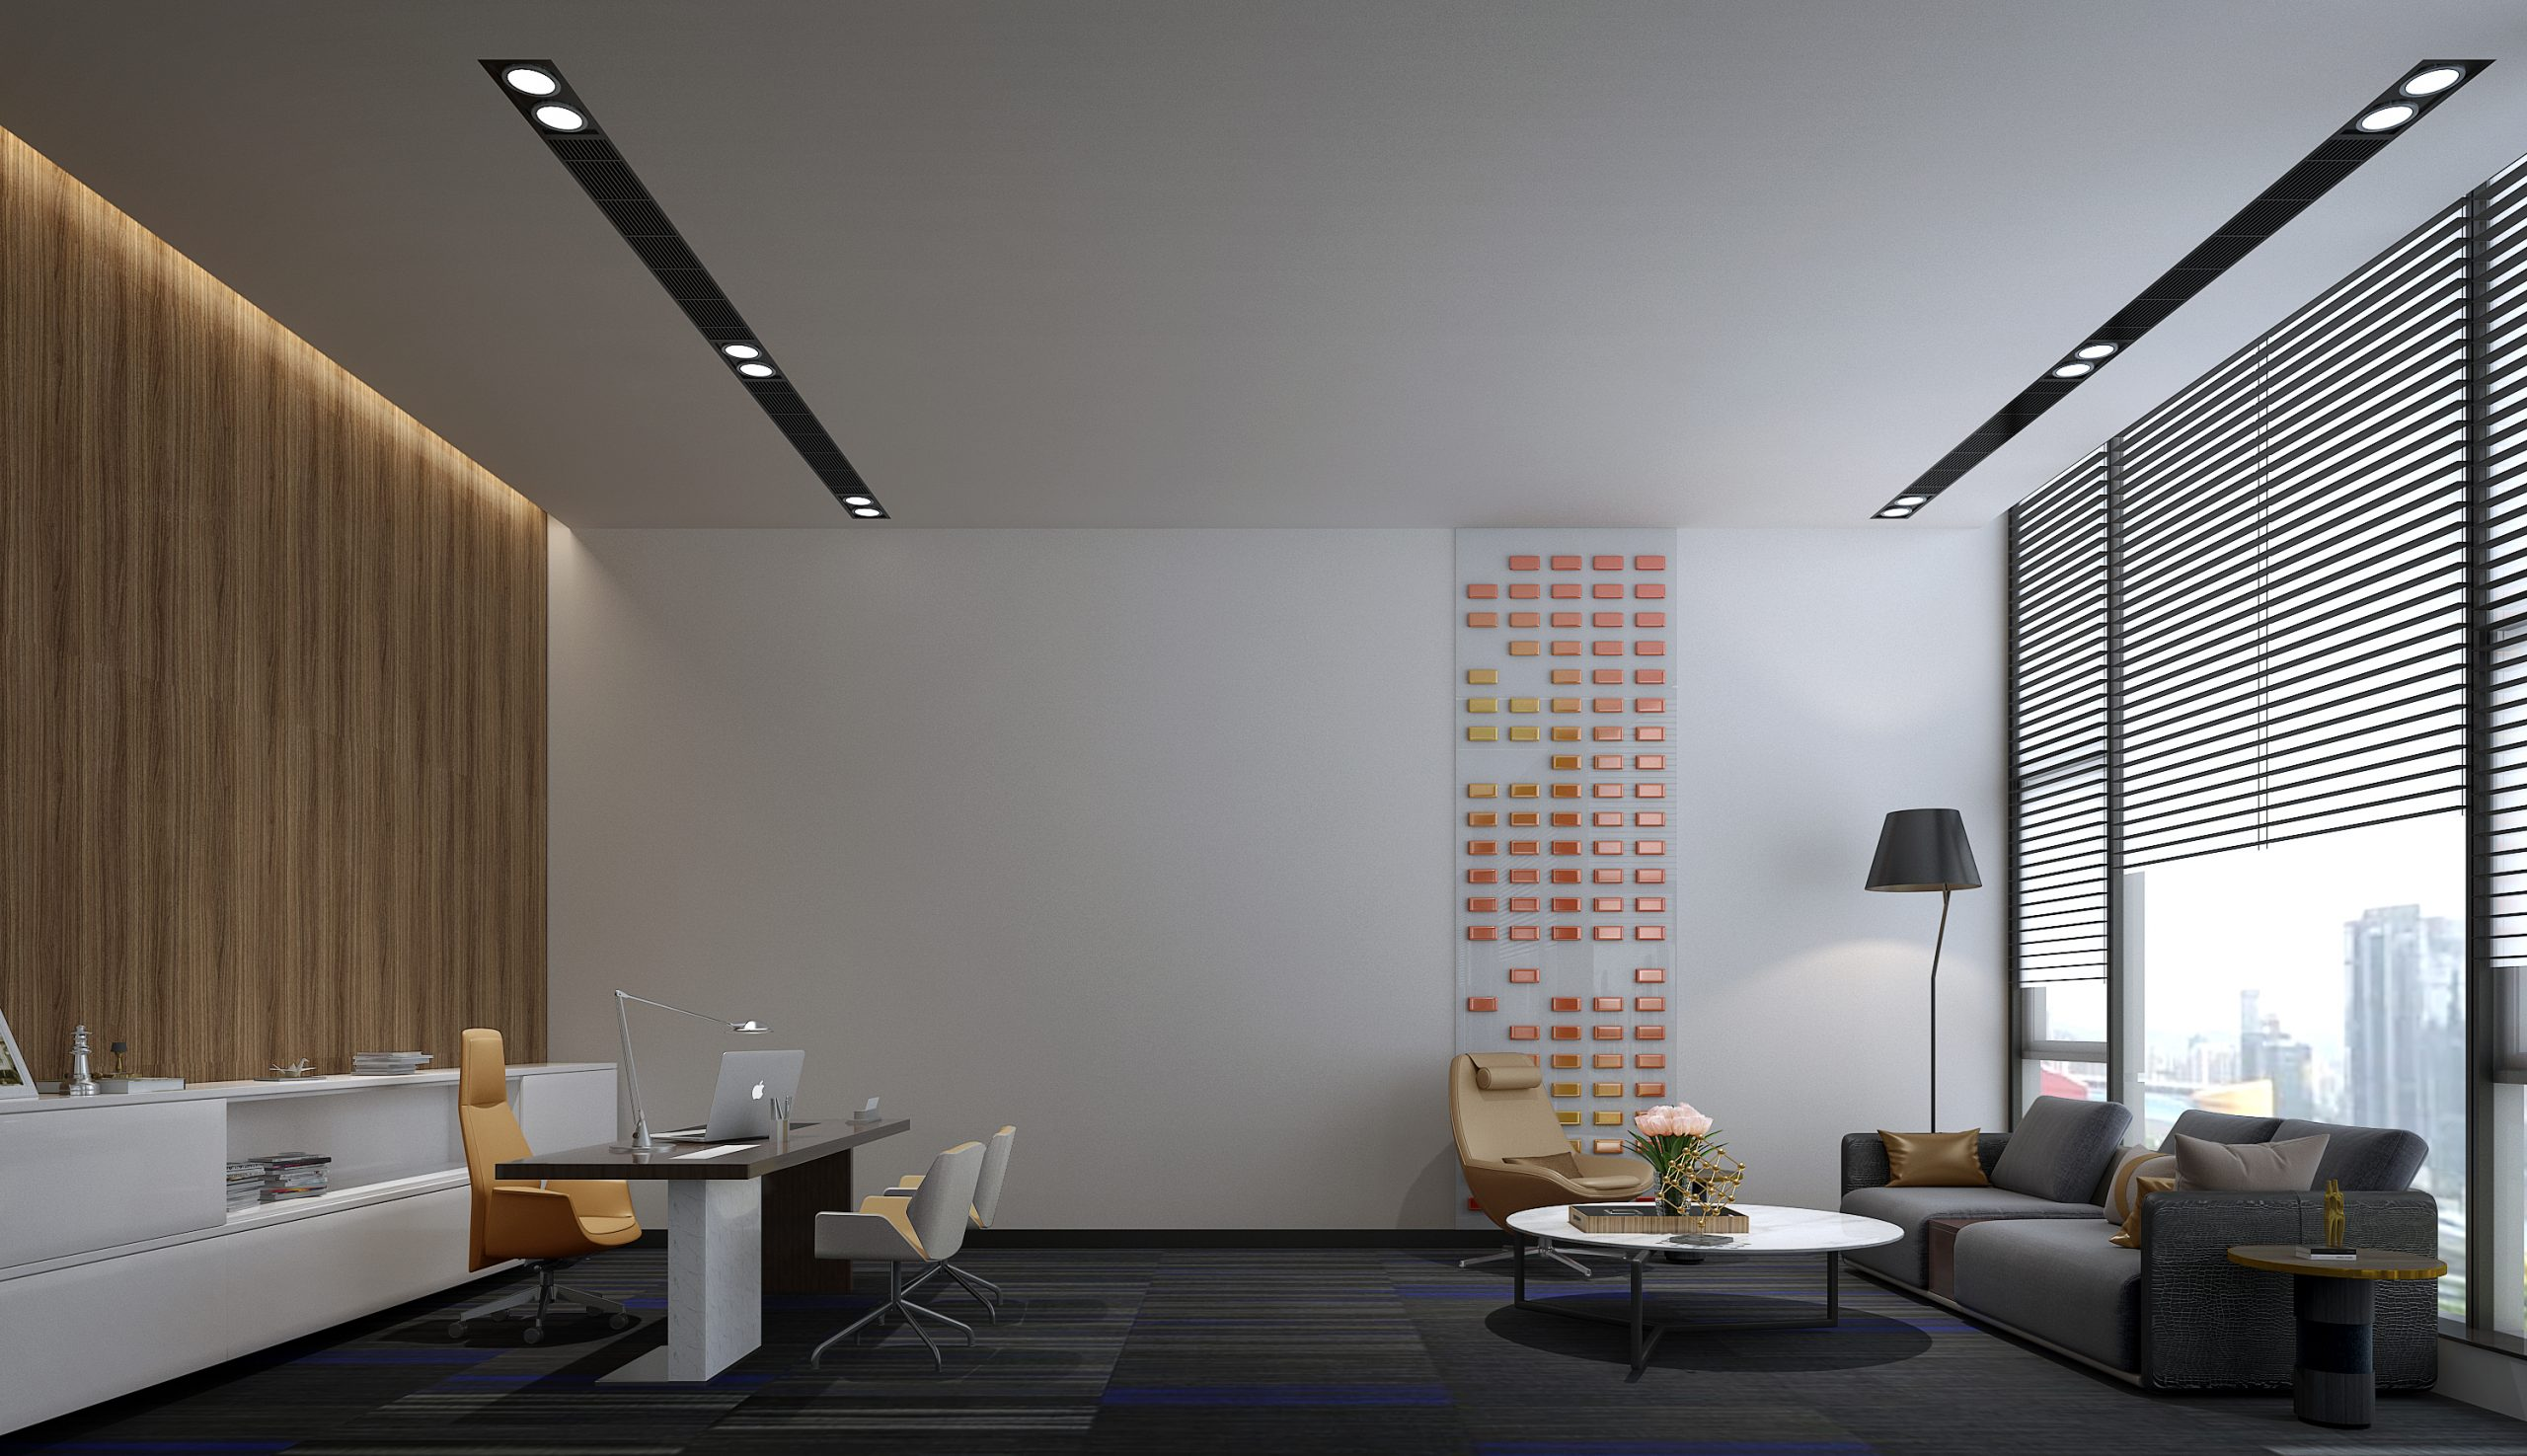 Why do you need to understand the manager's office renderings?